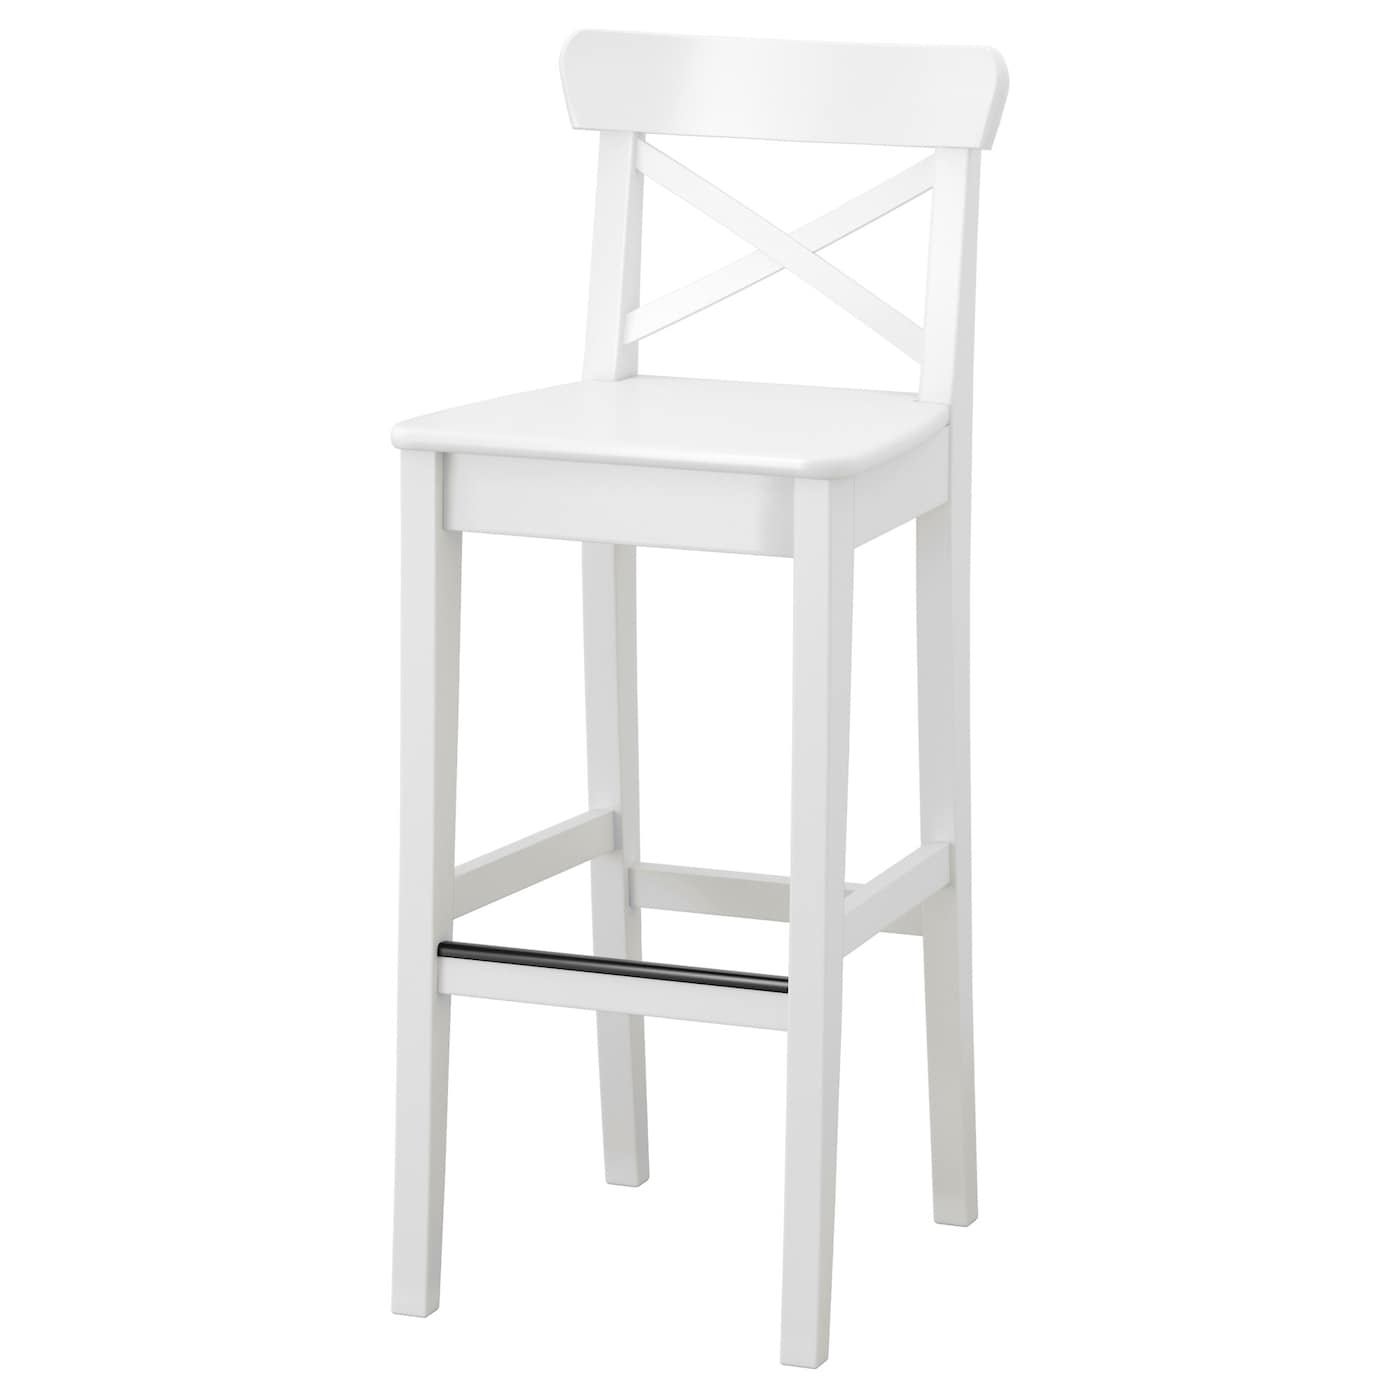 IKEA INGOLF bar stool with backrest With footrest for relaxed sitting posture.